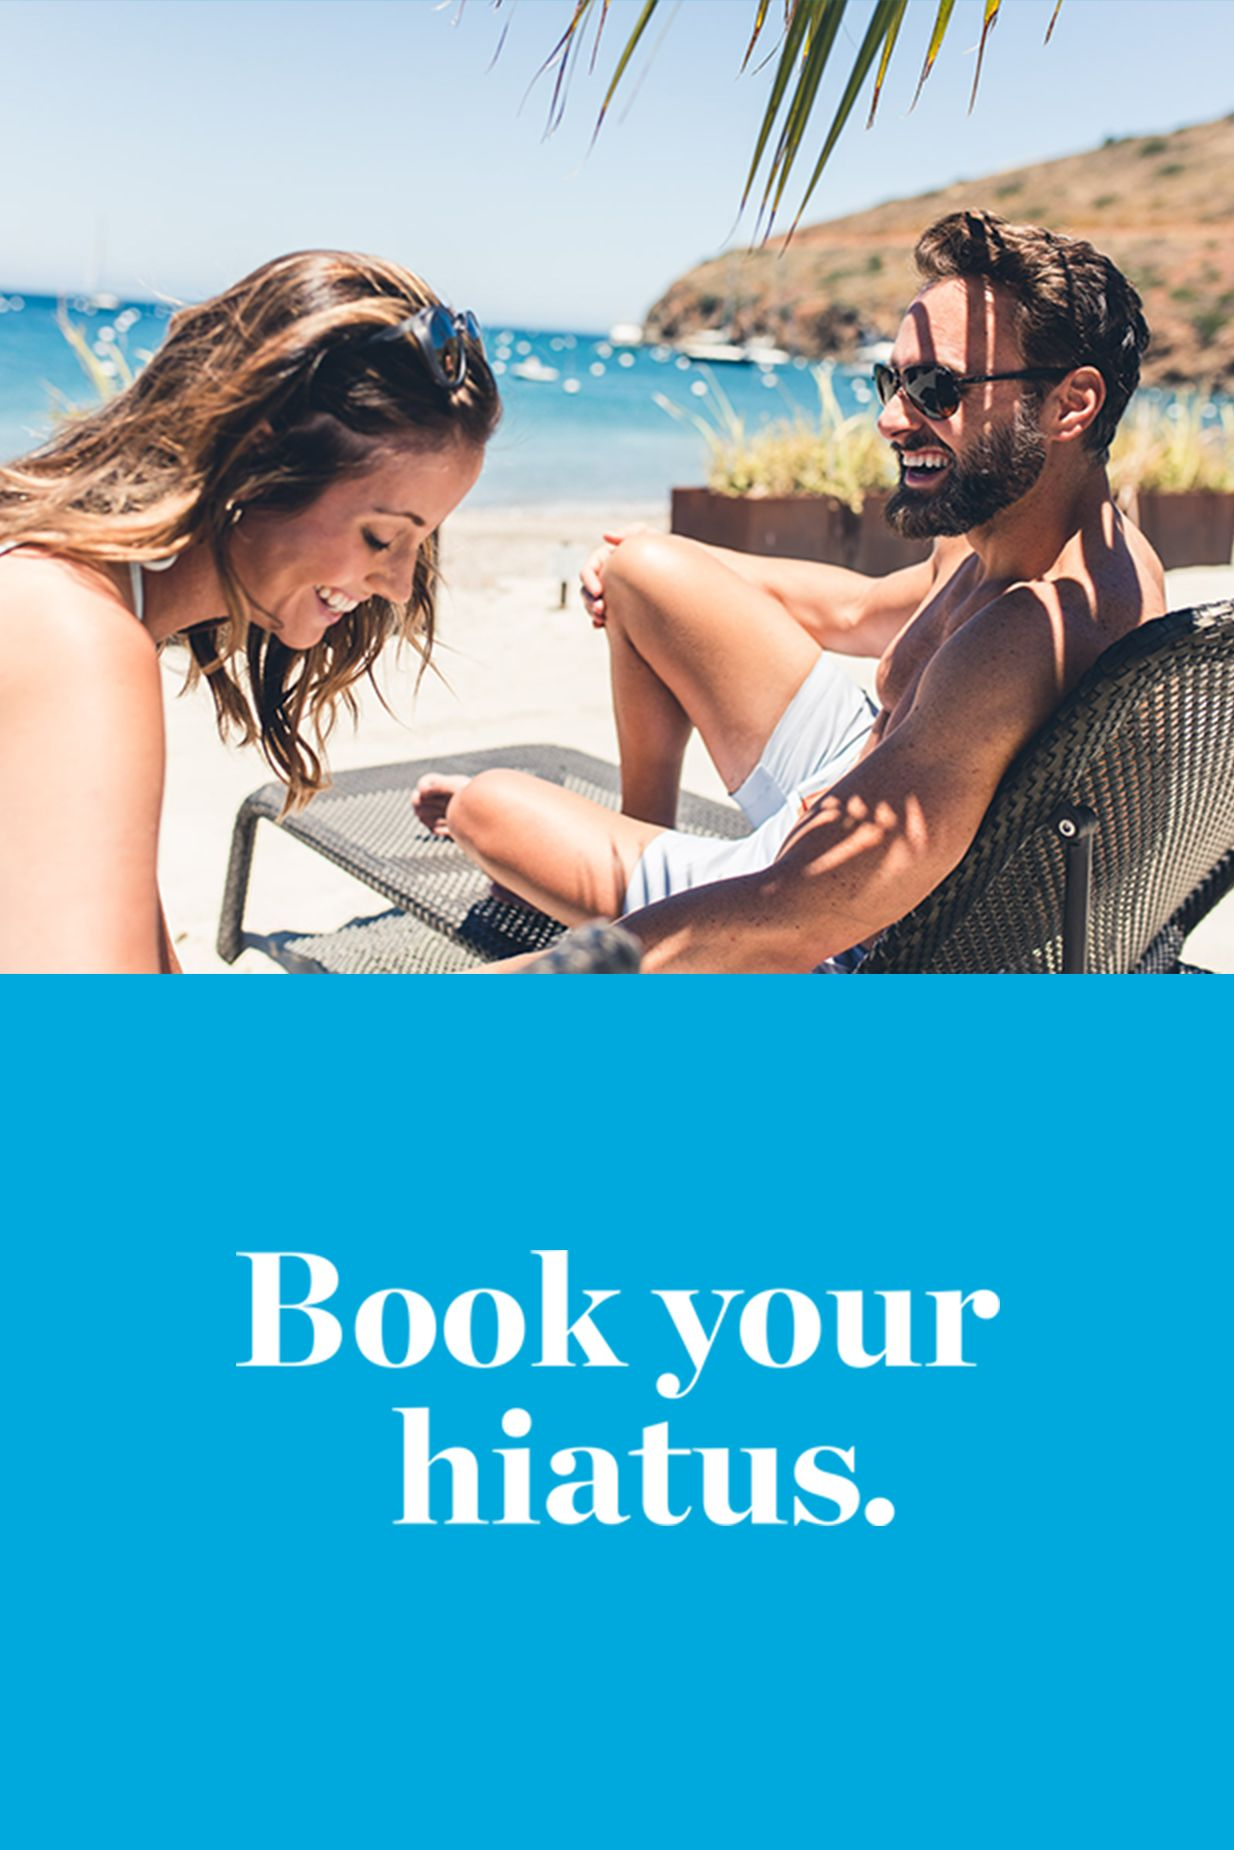 'Advertisement for Book your hiatus.' with man and woman in lounge chairs.